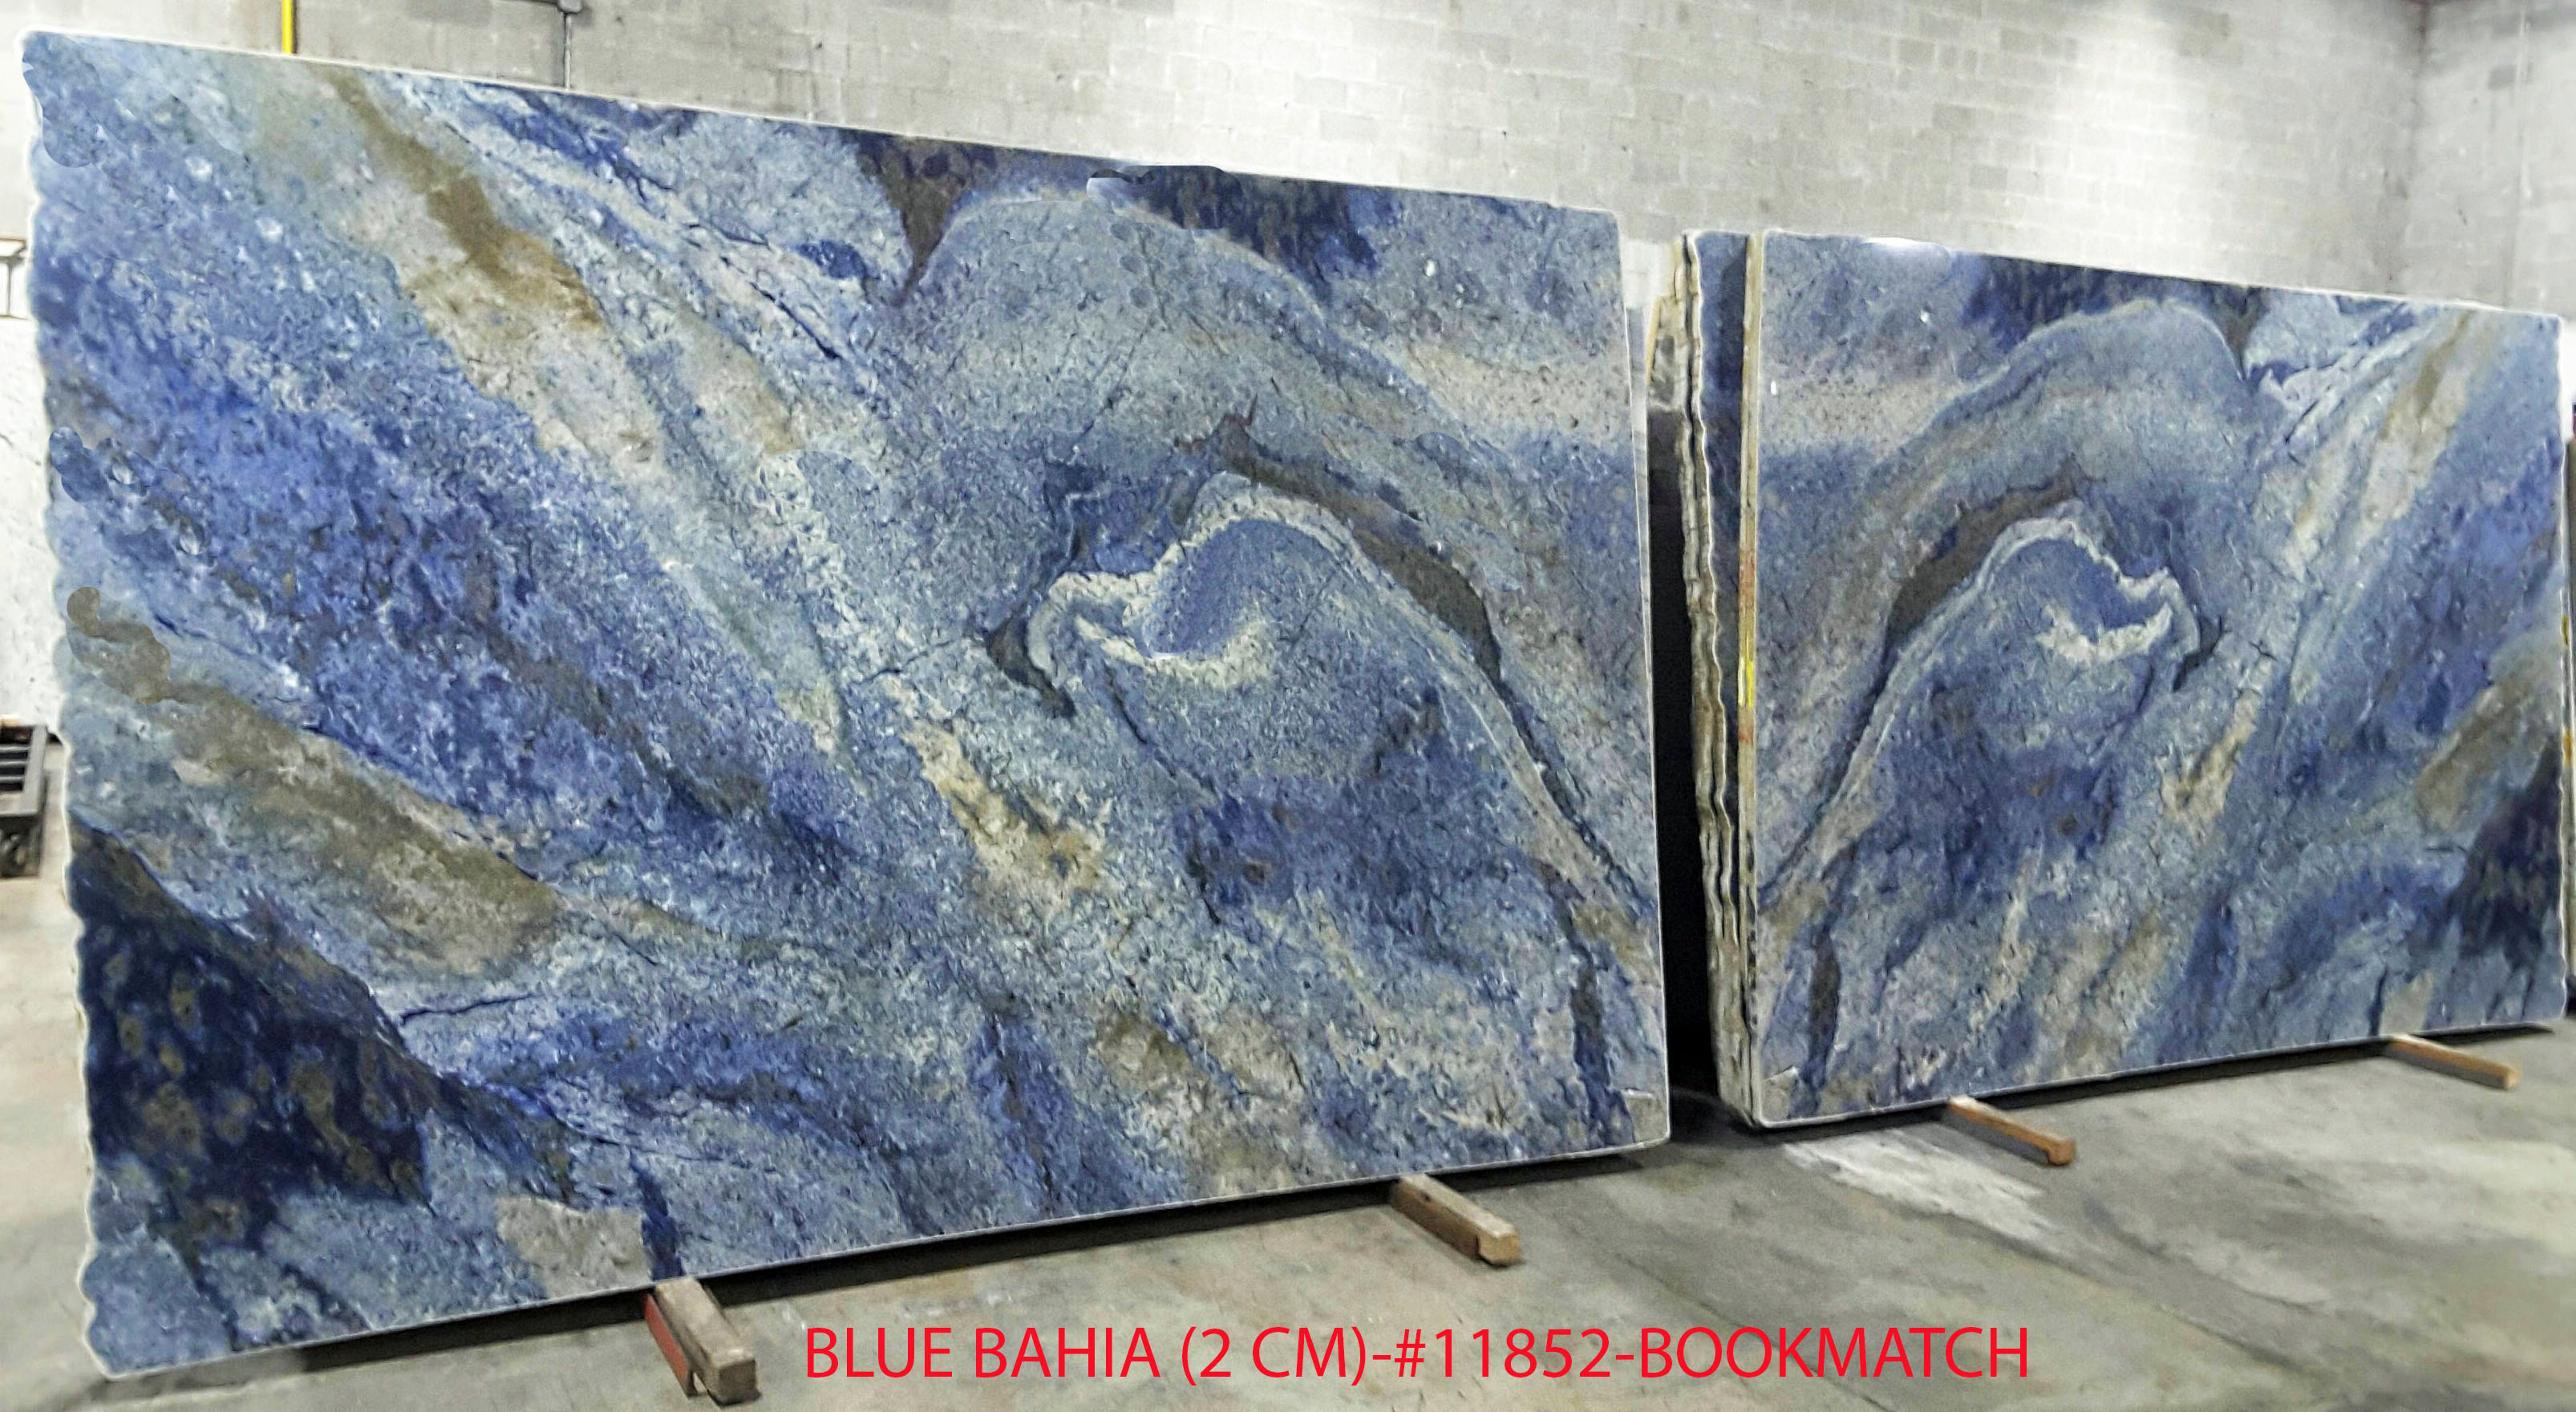 BLUE BAHIA (2 CM)-#11852-BOOKMATCH